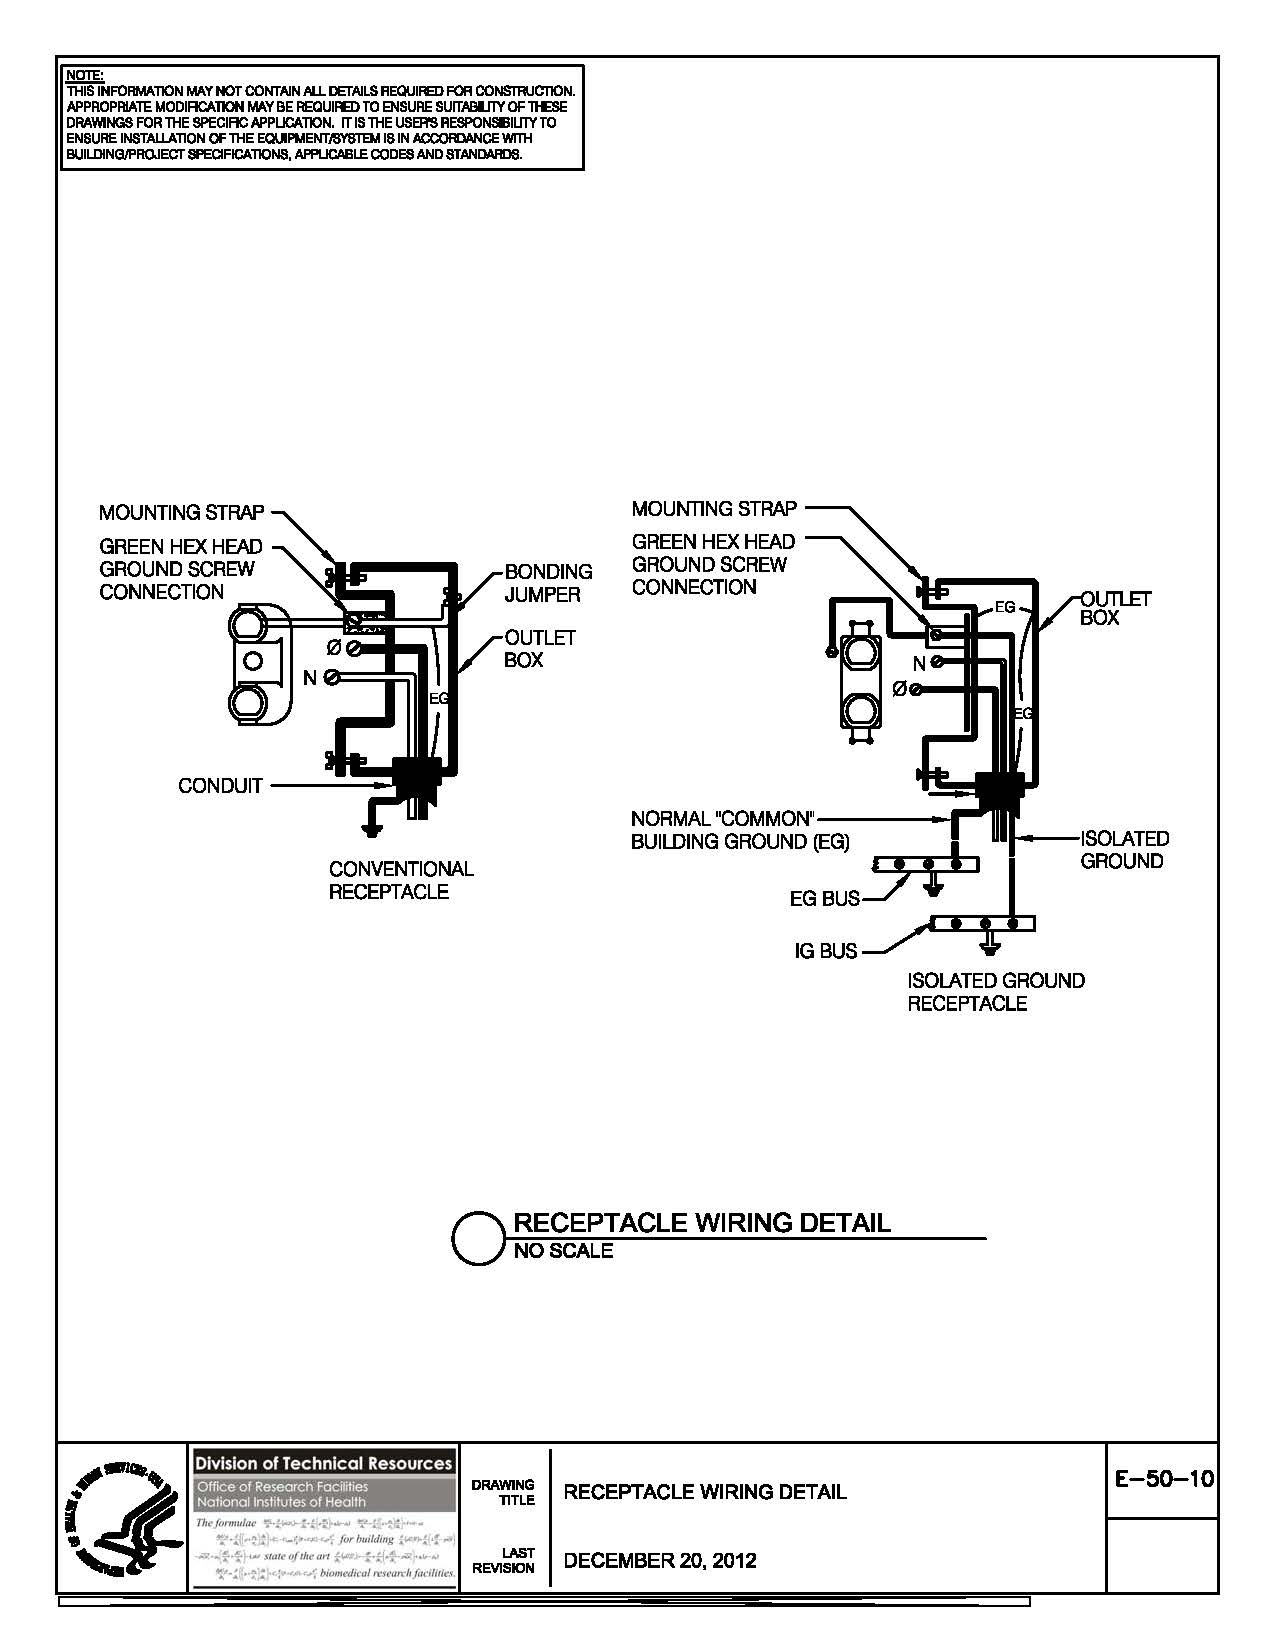 Nih Standard Cad Details Wiring Electrical Socket Thumbnail Of E 50 10 Receptacle